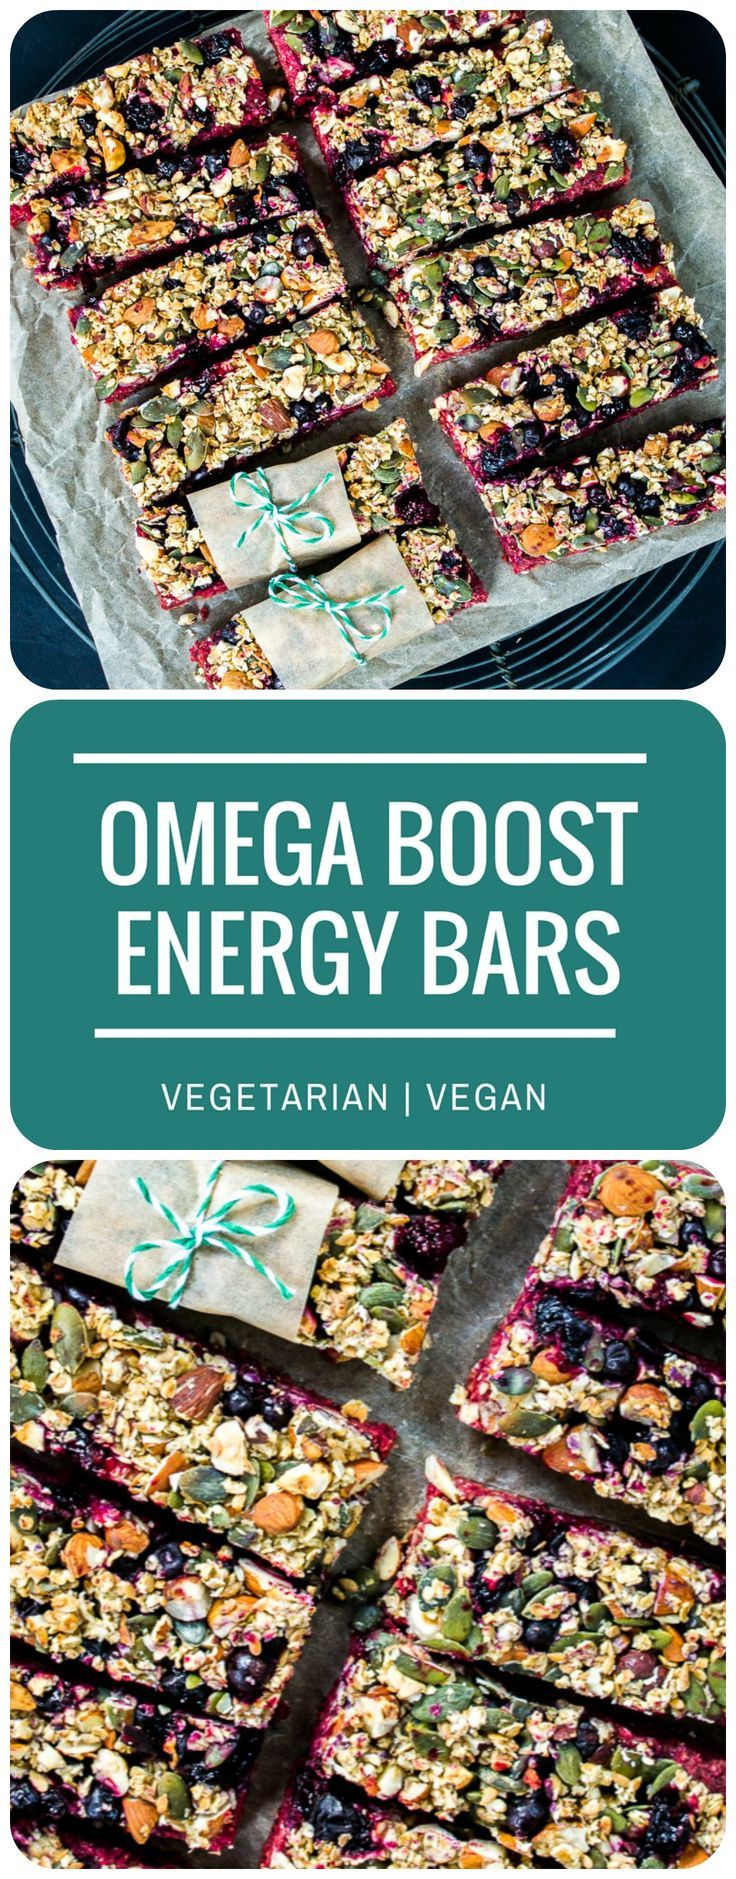 These stunning Omega Boost Beetroot & Blackcurrant Energy Bars give you a proper boost of vitamins, minerals and omega oils to power you through the day! Perfect for vegetarians or vegans.